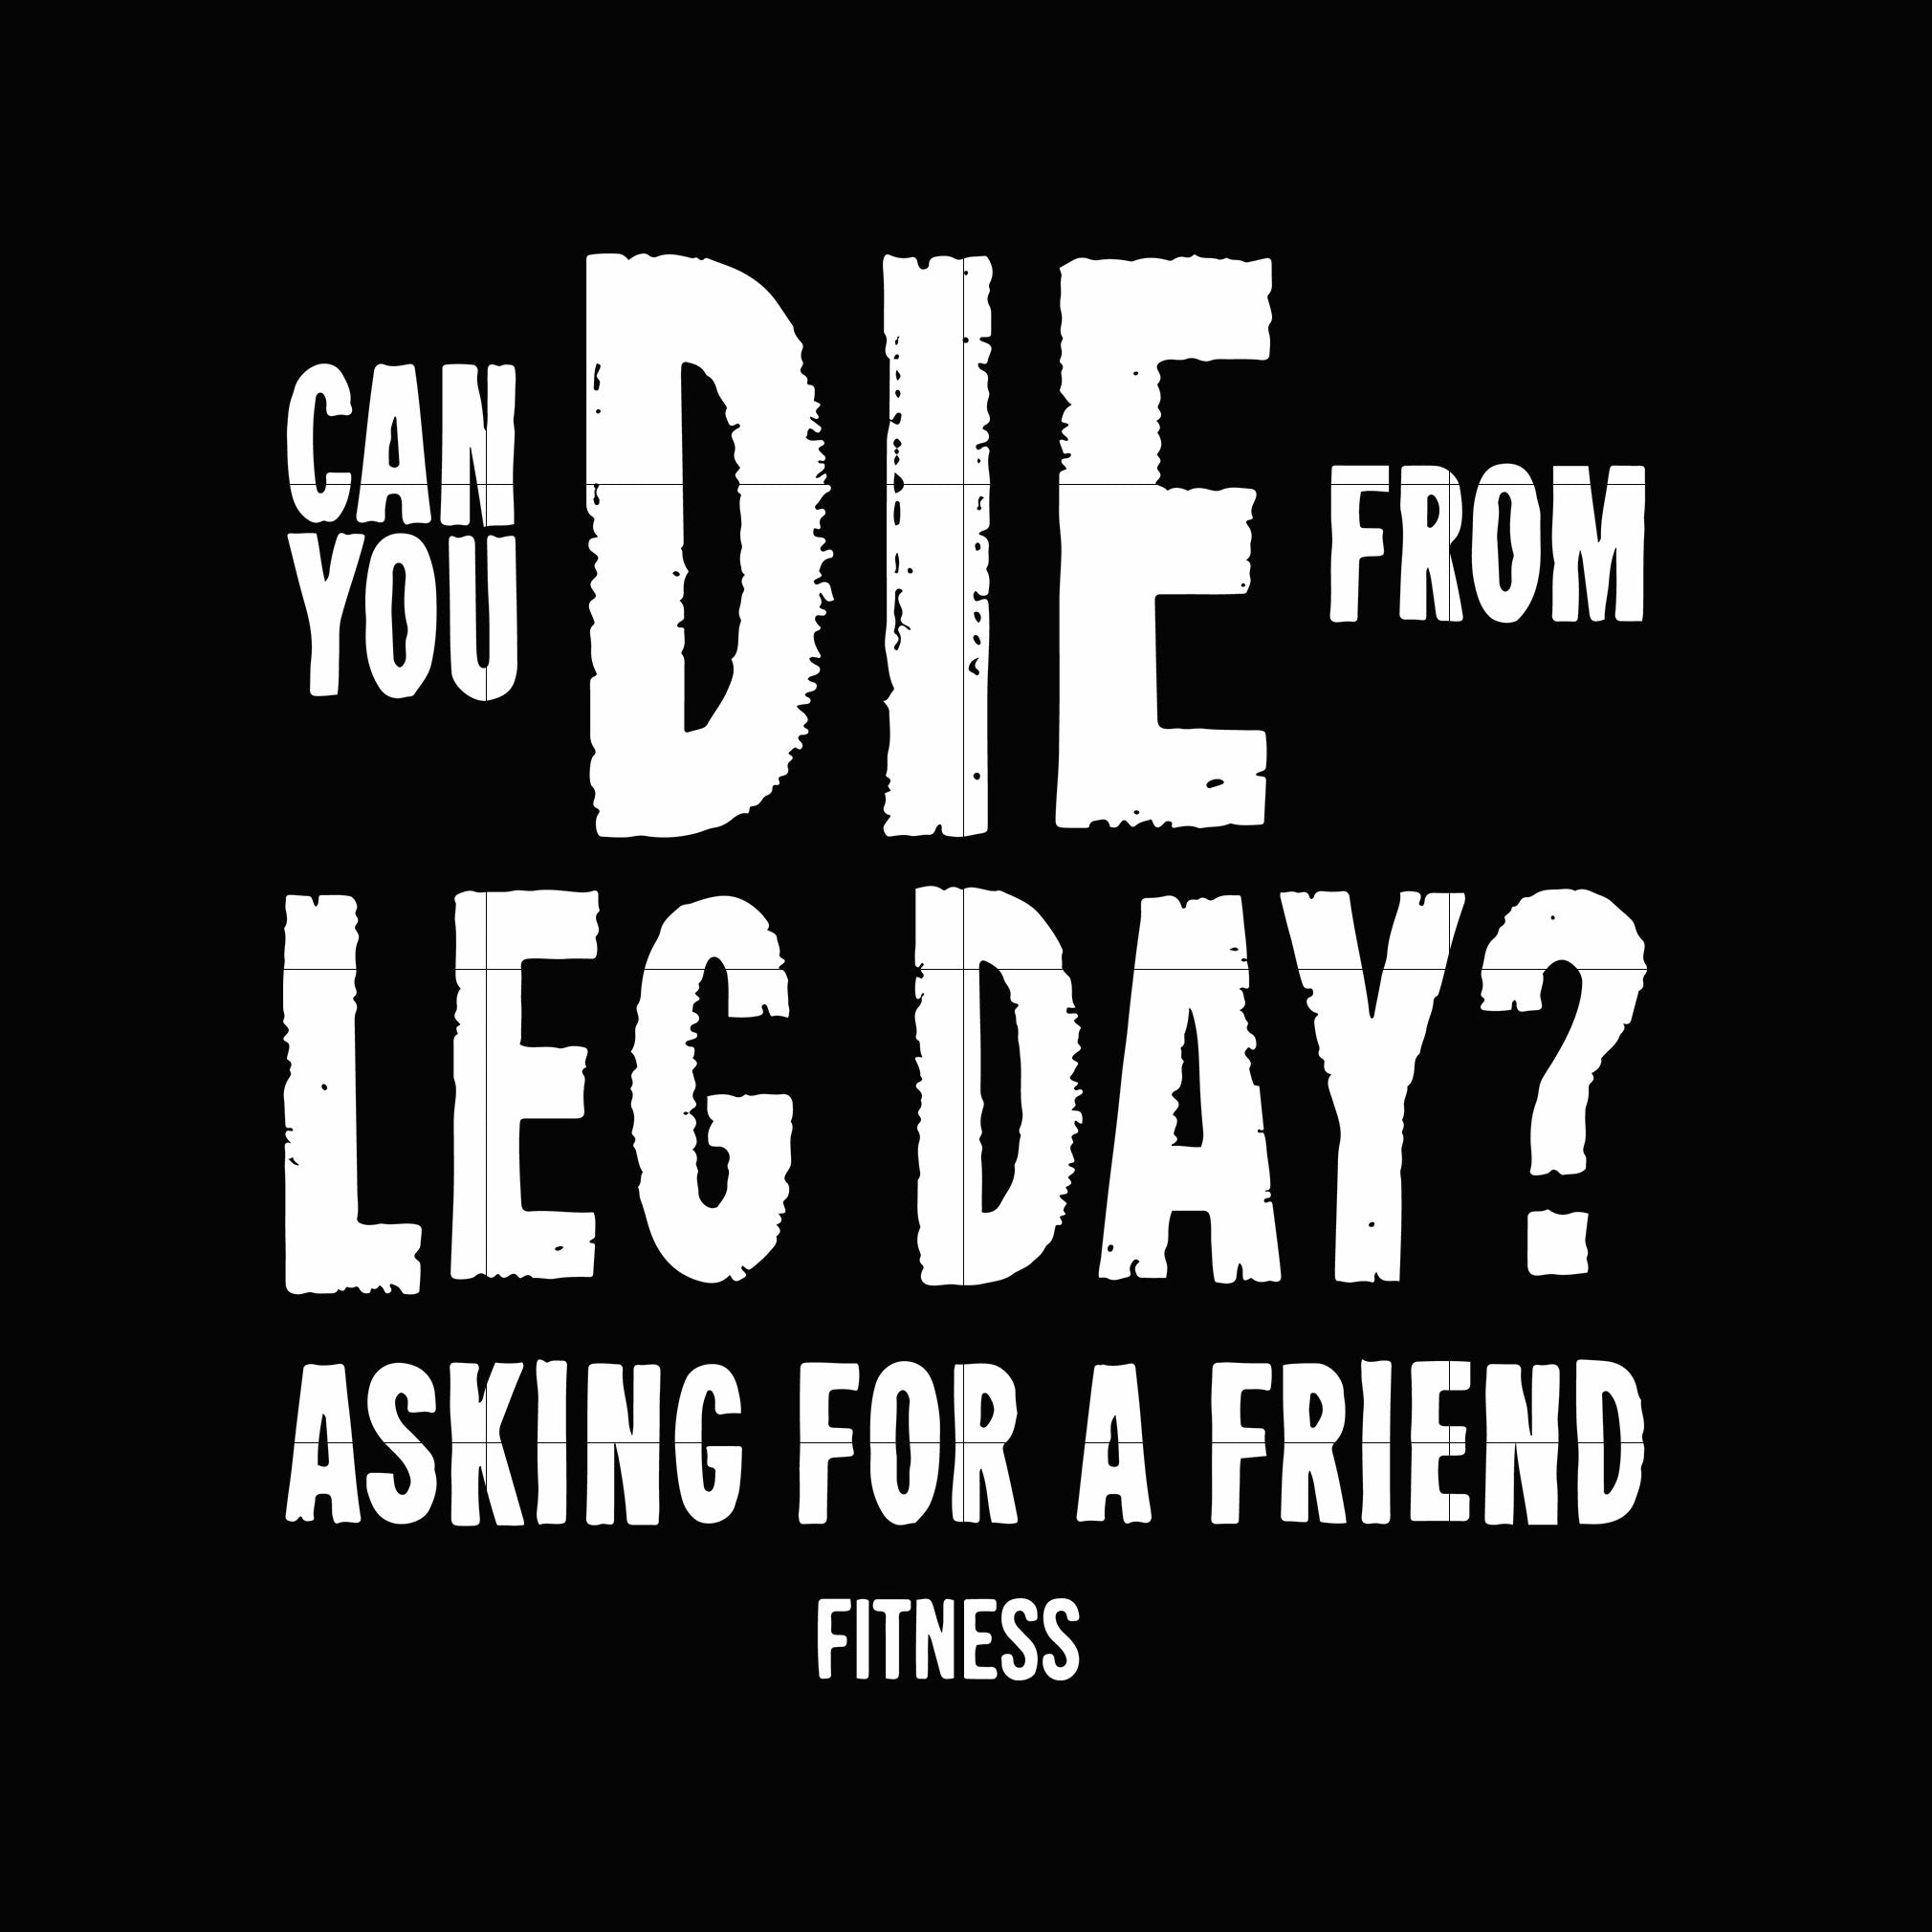 Can you die from leg day asking for a friend fitness svg,dxf,eps,png digital file